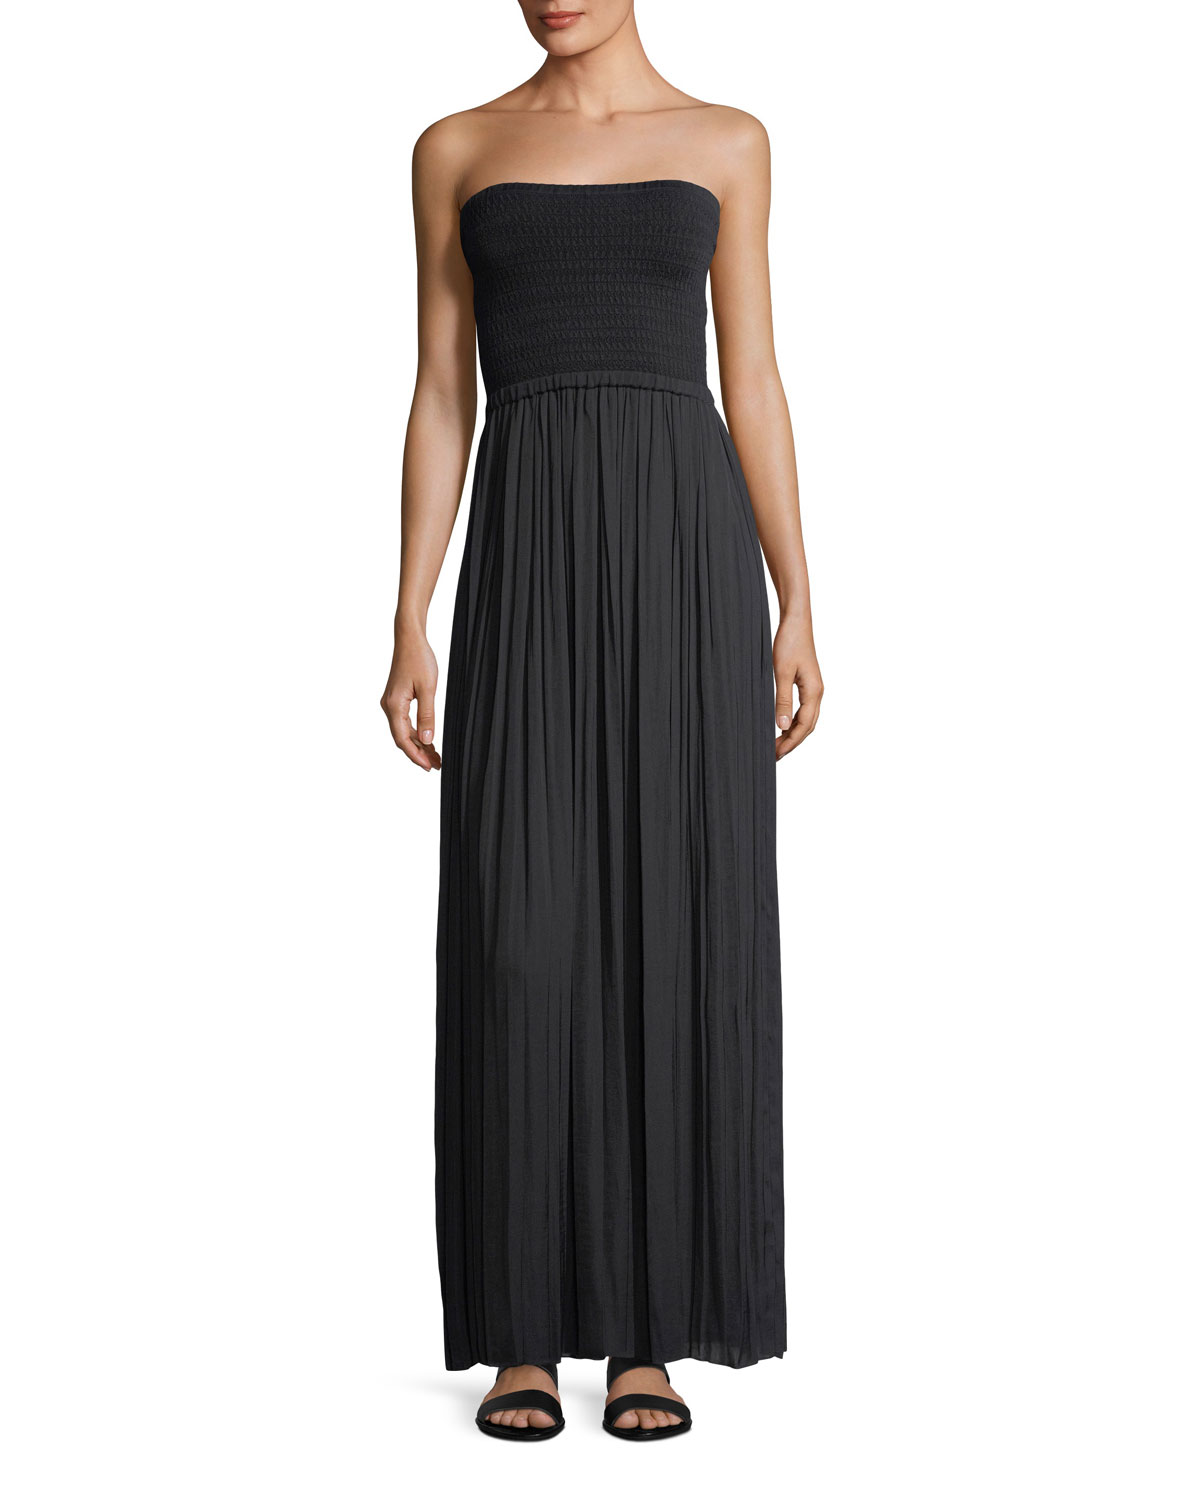 Elizabeth & James Emmaline Strapless Knit Combo Maxi Dress ...